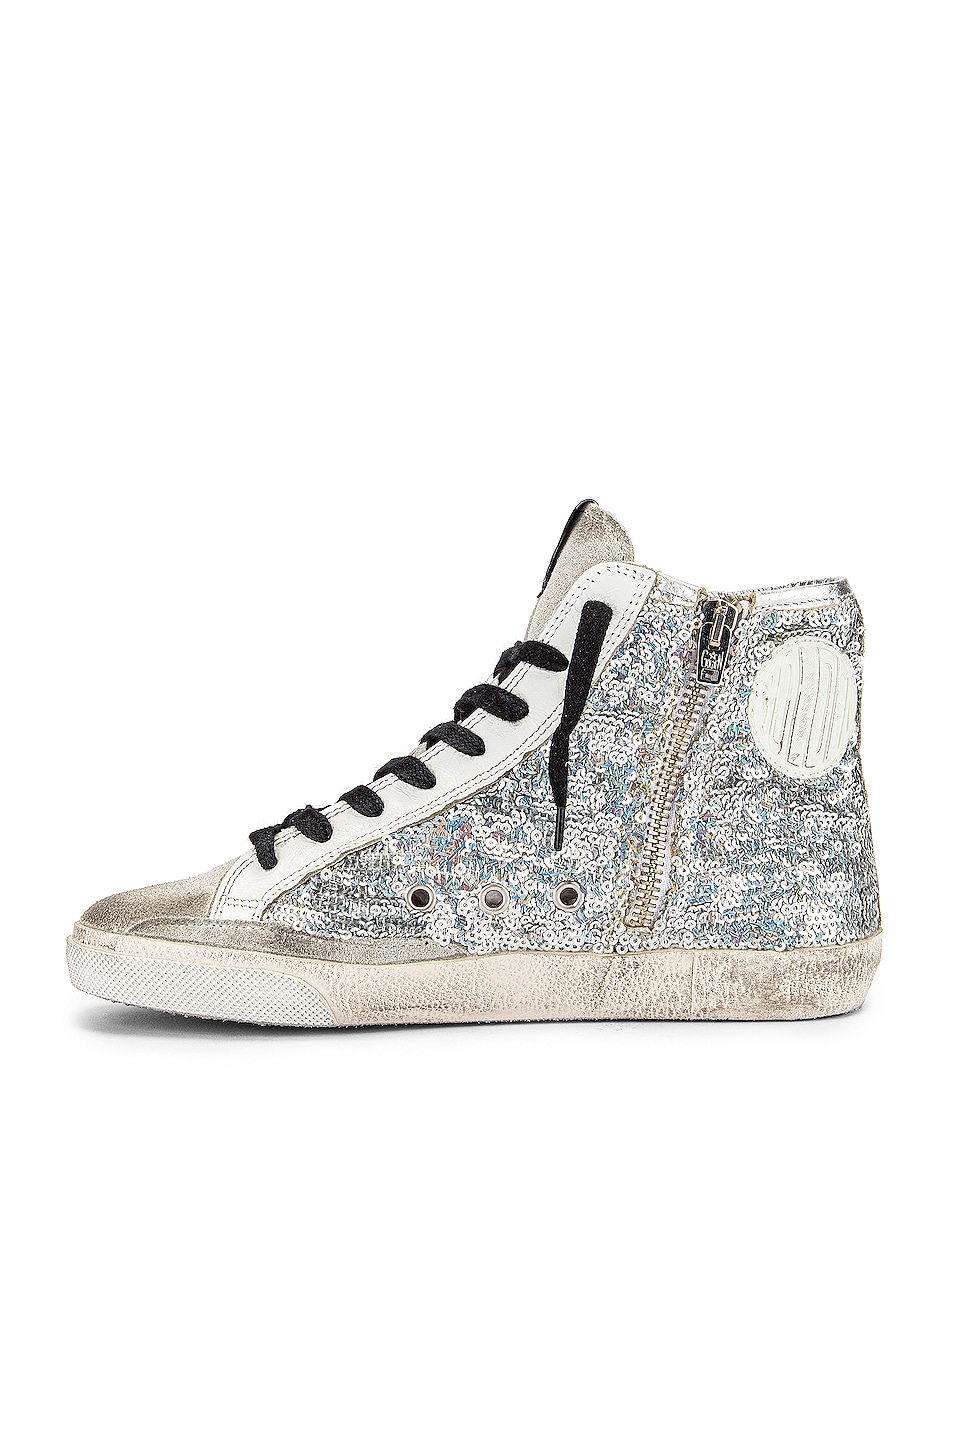 Image 5 of Golden Goose Francy Sneaker in Silver Paillettes & Pink